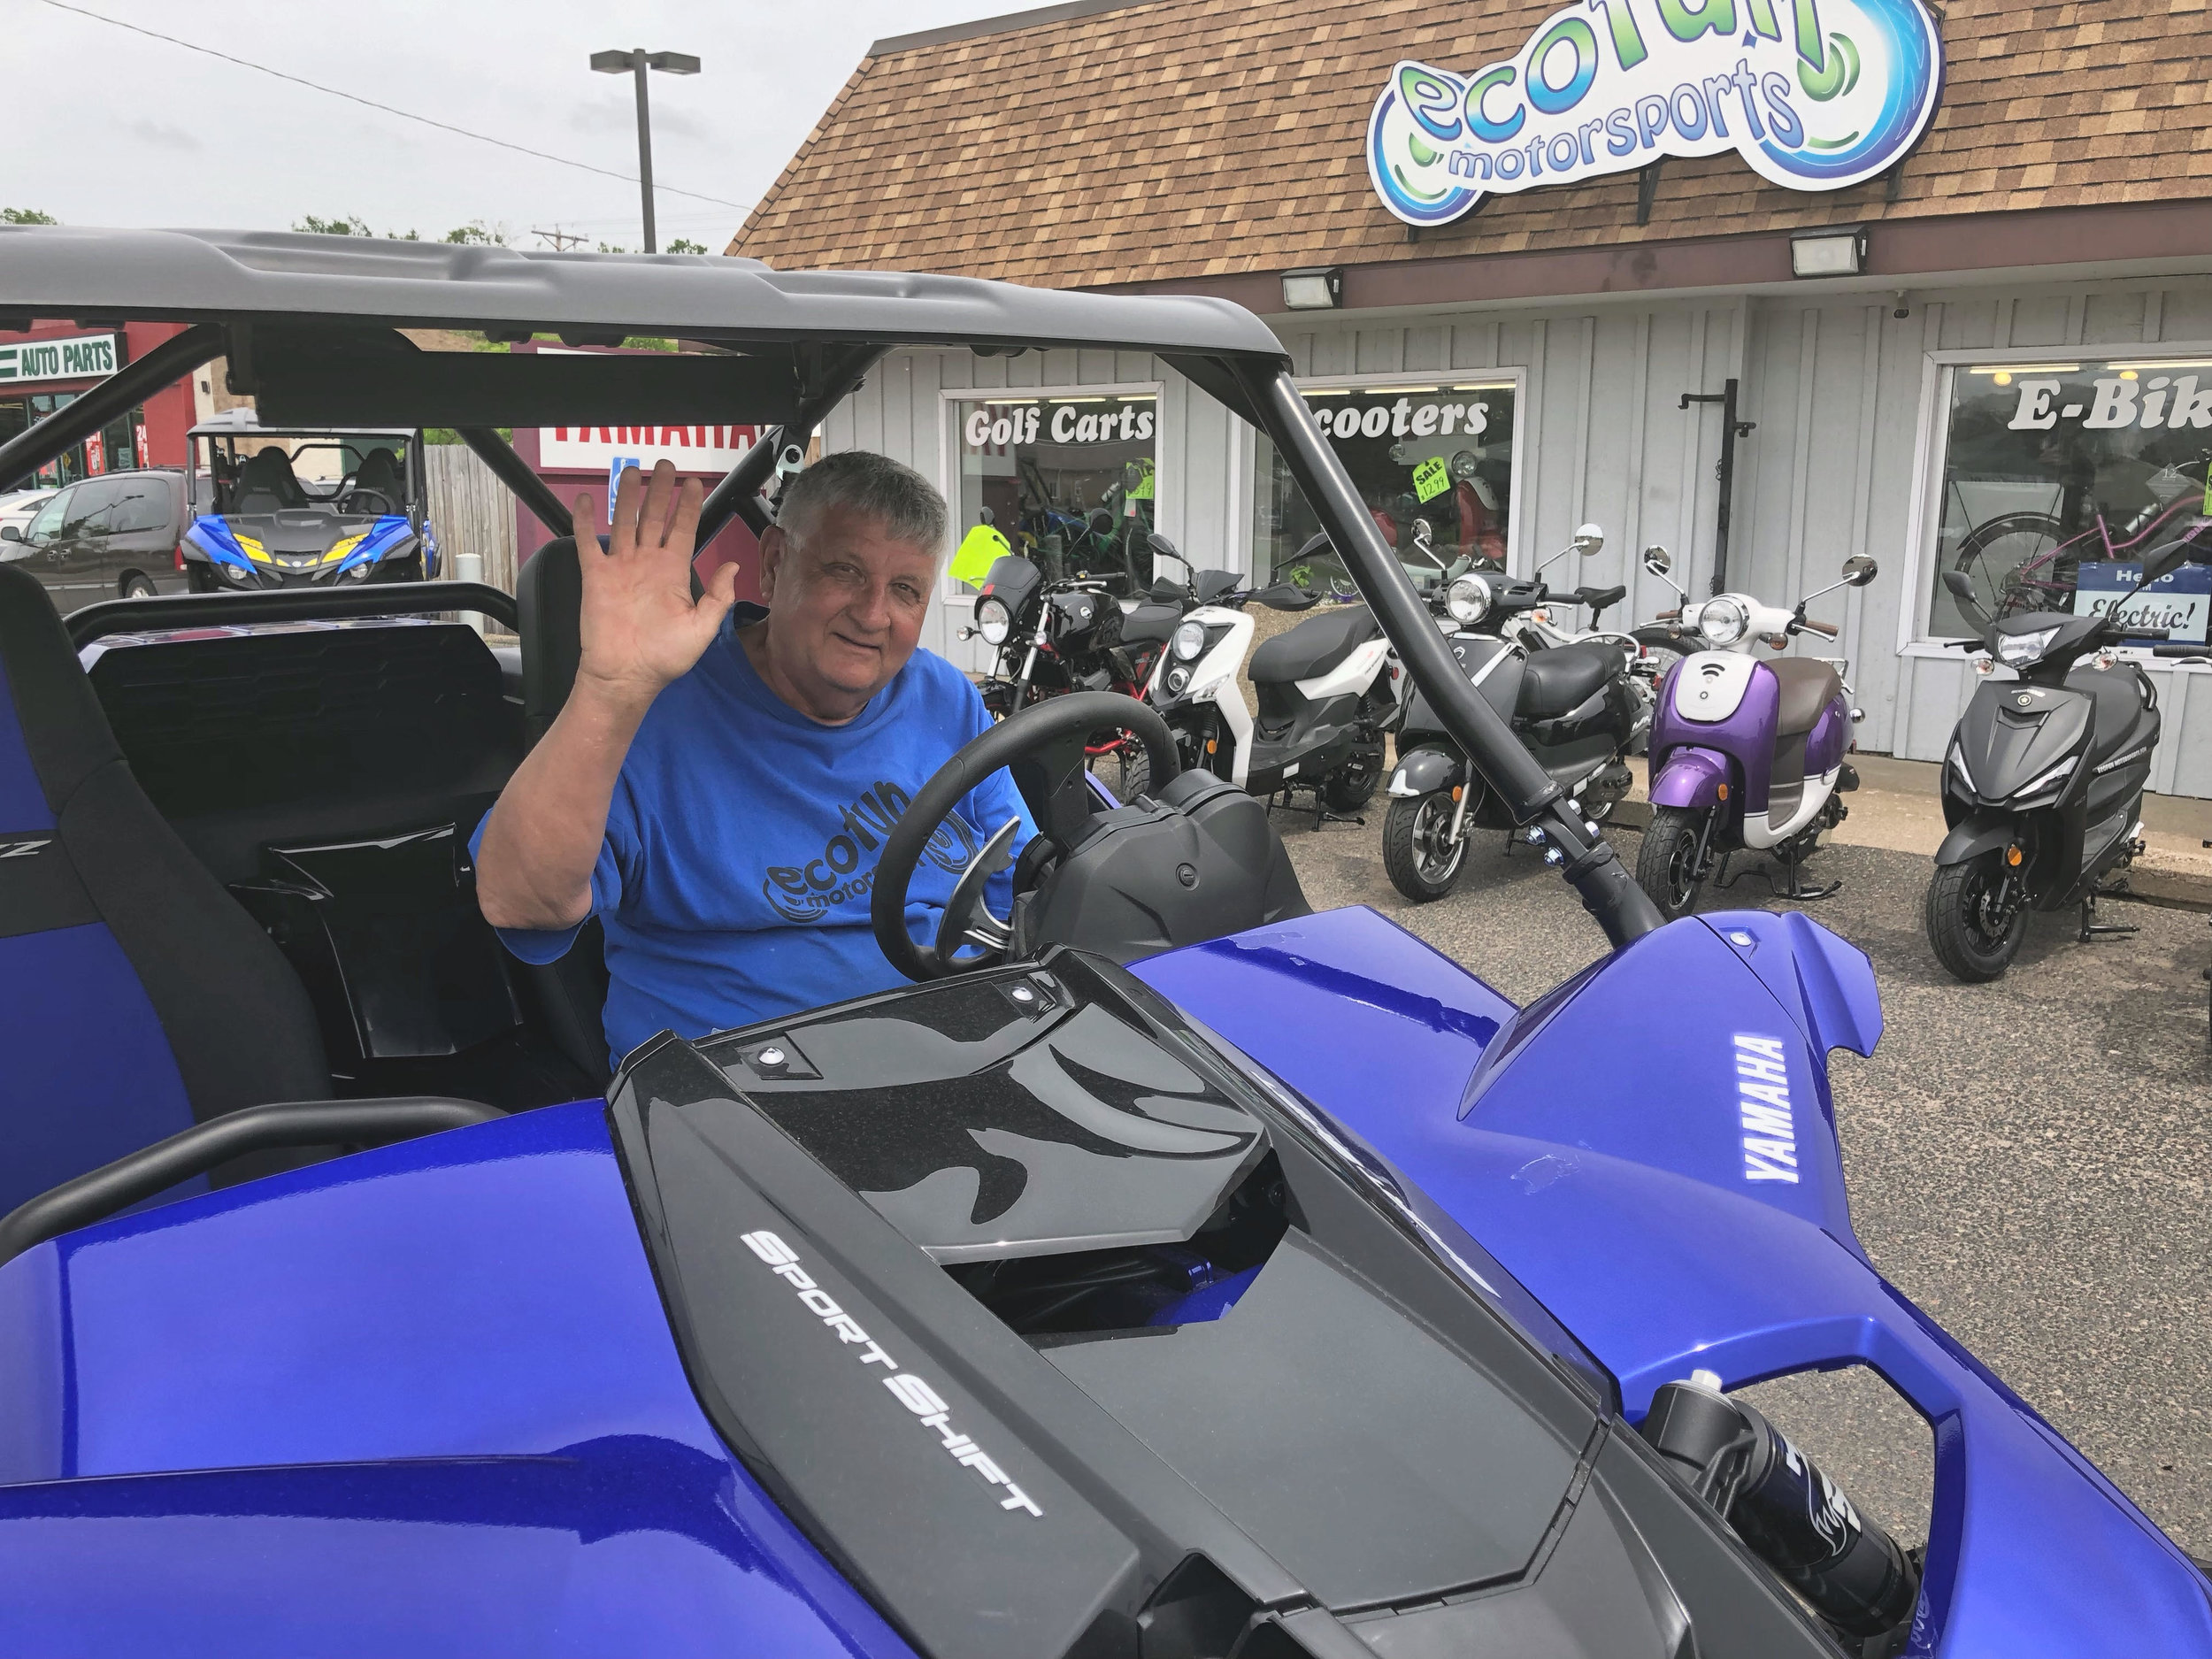 Gary - Maintenance Tech - Gary is our Maintenance Tech but also works in inventory and shipping. His favorite Side by Side is Yamaha YXZ 1000R. On his free time he enjoys spending time at his cabin.